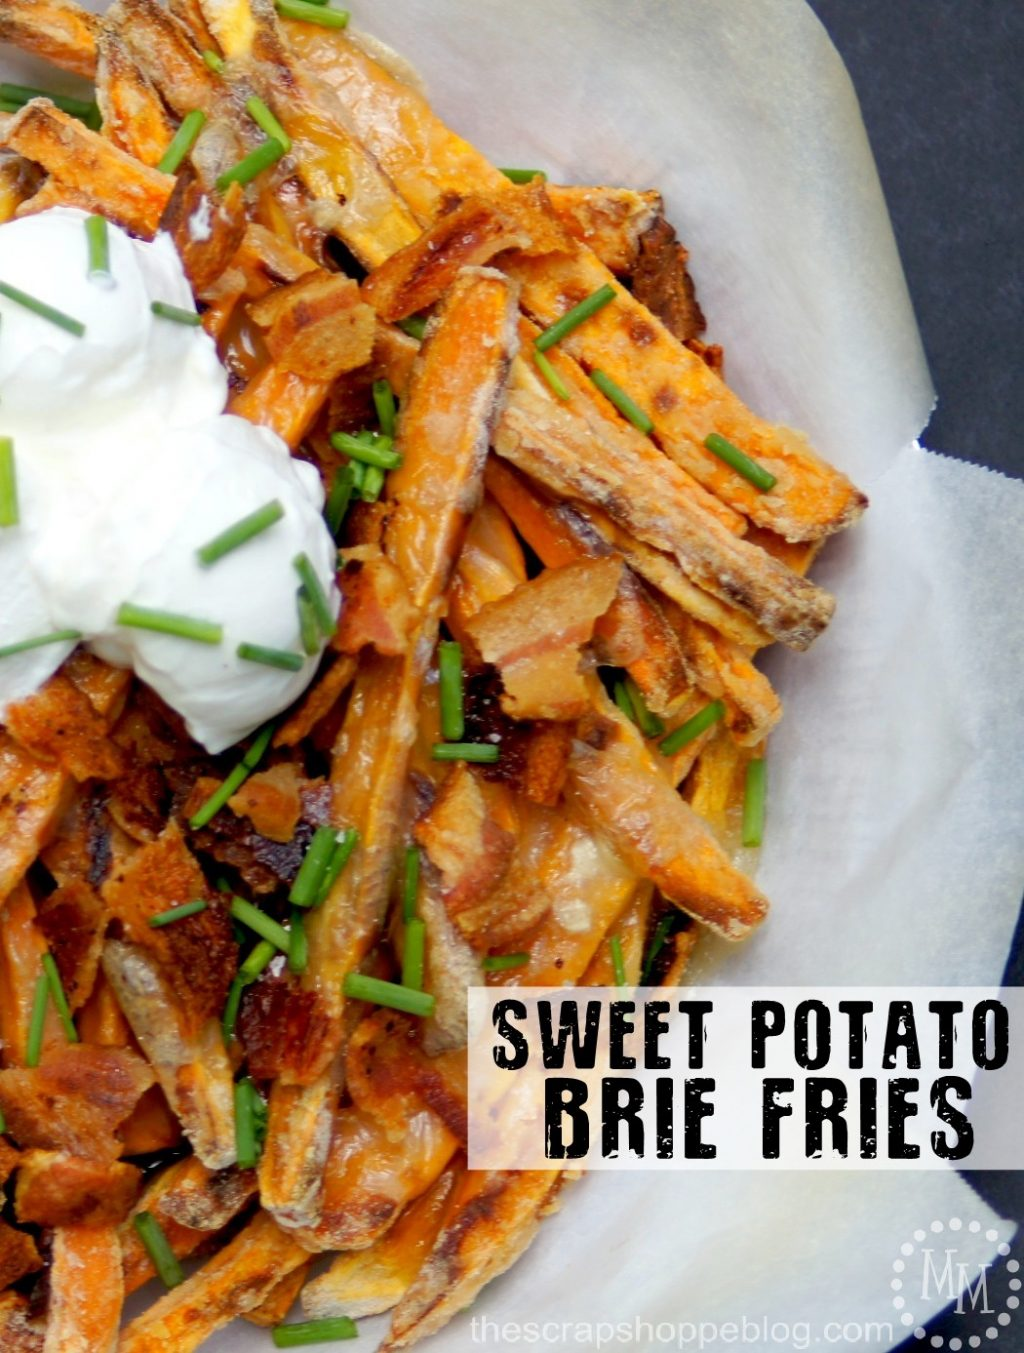 Sweet Potato Brie Fries Recipe - The Scrap Shoppe